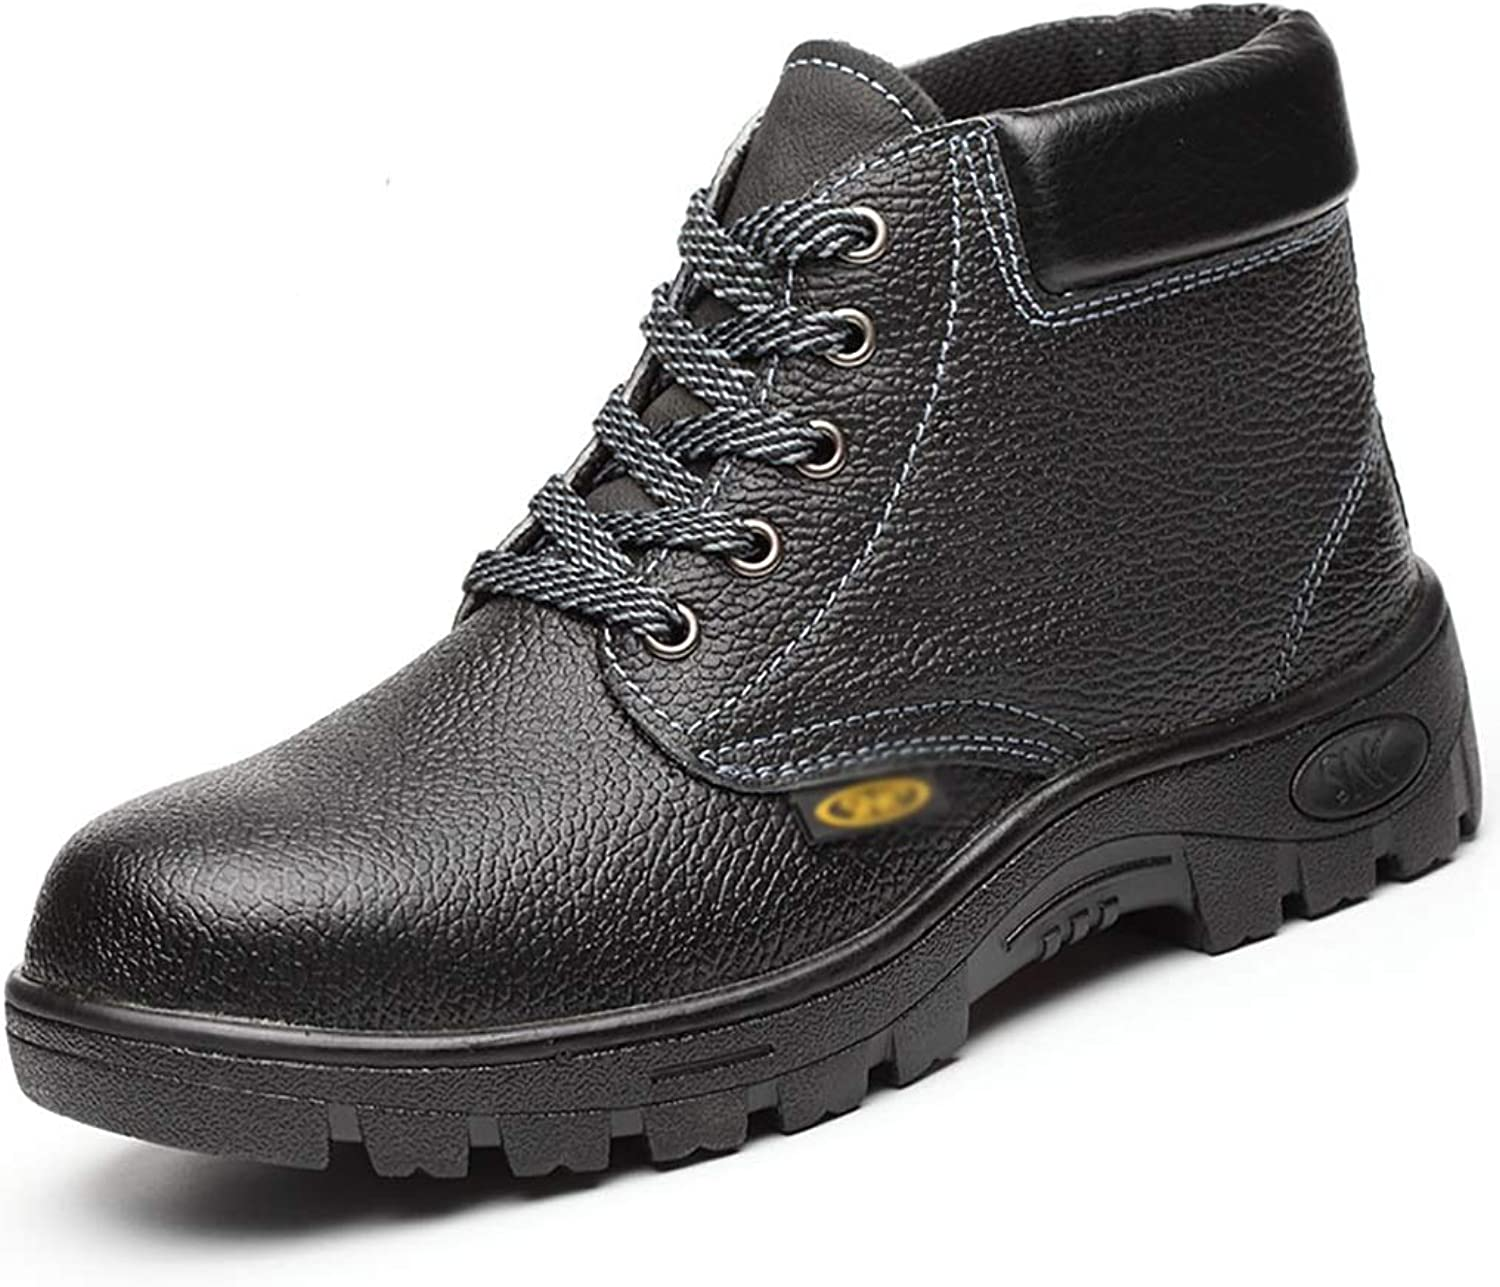 ZYFXZ safety shoes Winter men's high-top shoes, breathable anti-piercing welder safety work boots, steel toe cap base boots work boots (Size   37)